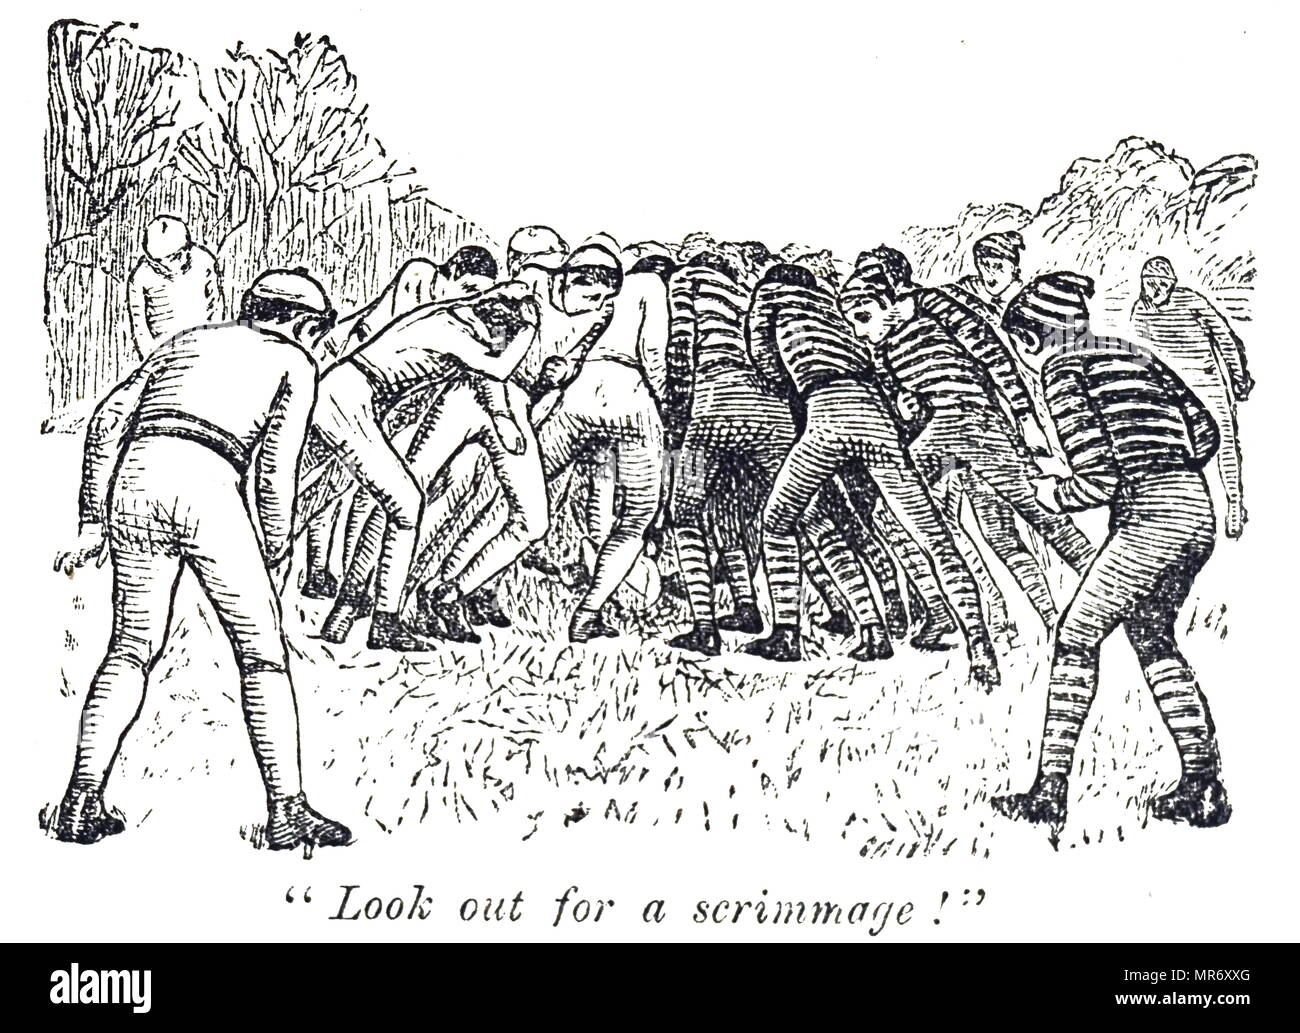 Illustration depicting a scrimmage during a game of rugby. A scrum is an ordered formation of players, used to restart play, in which the forwards of a team form up with arms interlocked and heads down, and push forward against a similar group from the opposing side. The ball is thrown into the scrum and the players try to gain possession of it by kicking it backwards towards their own side. Dated 19th century - Stock Image